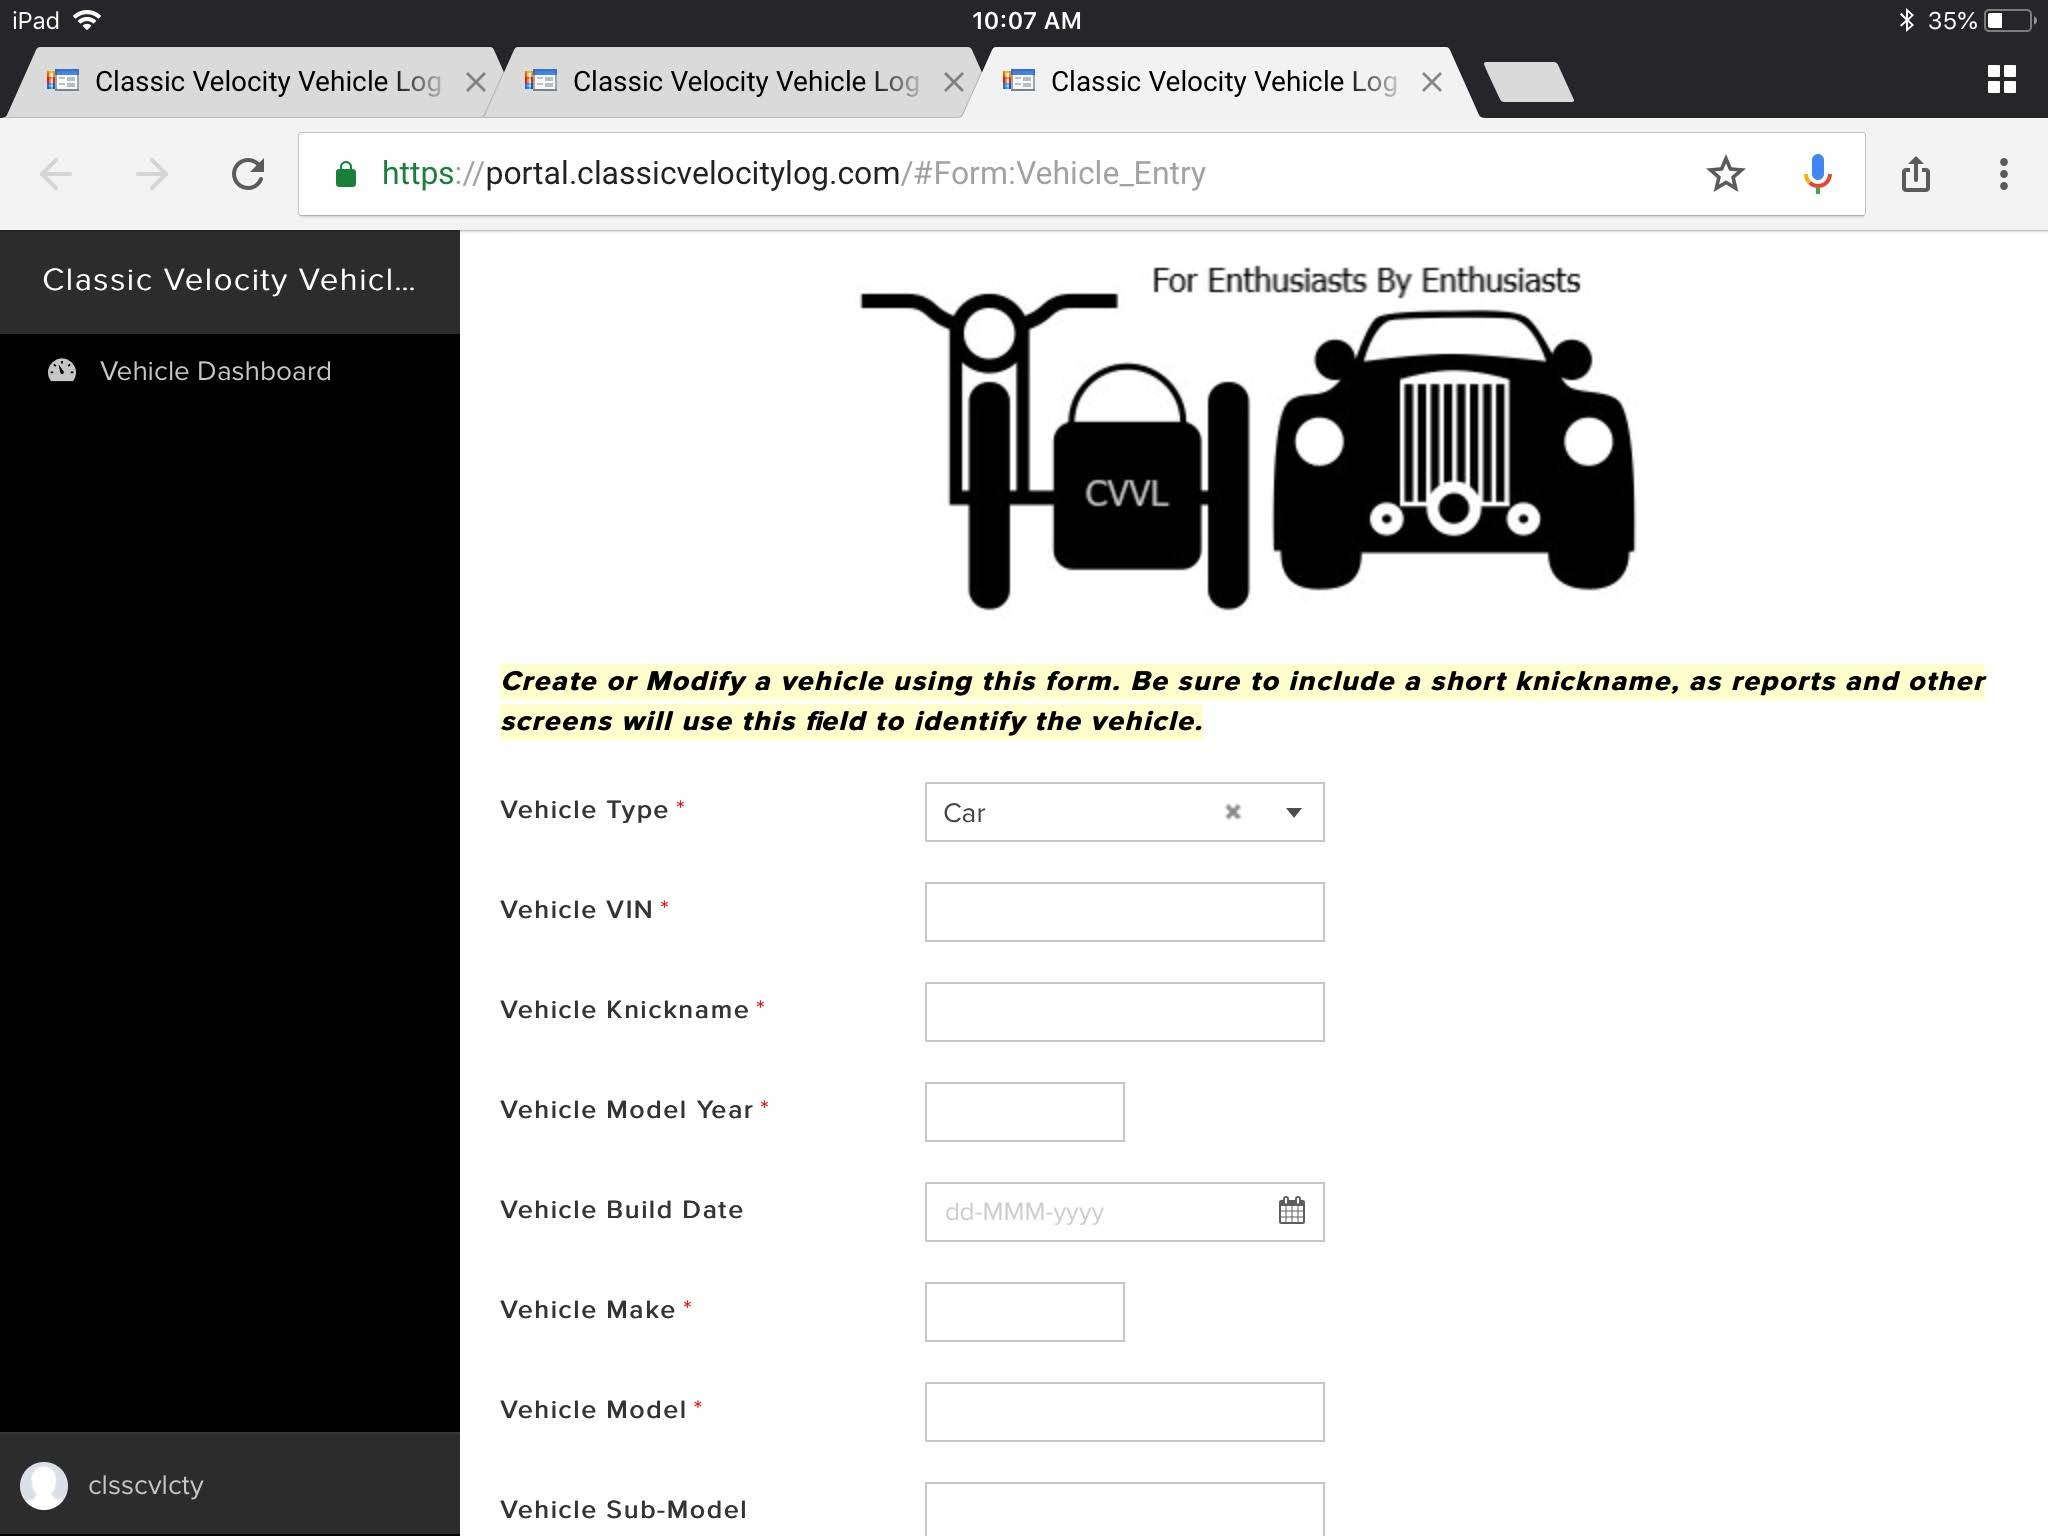 You can get pretty detailed if you want, or you can just enter the minimum required fields...